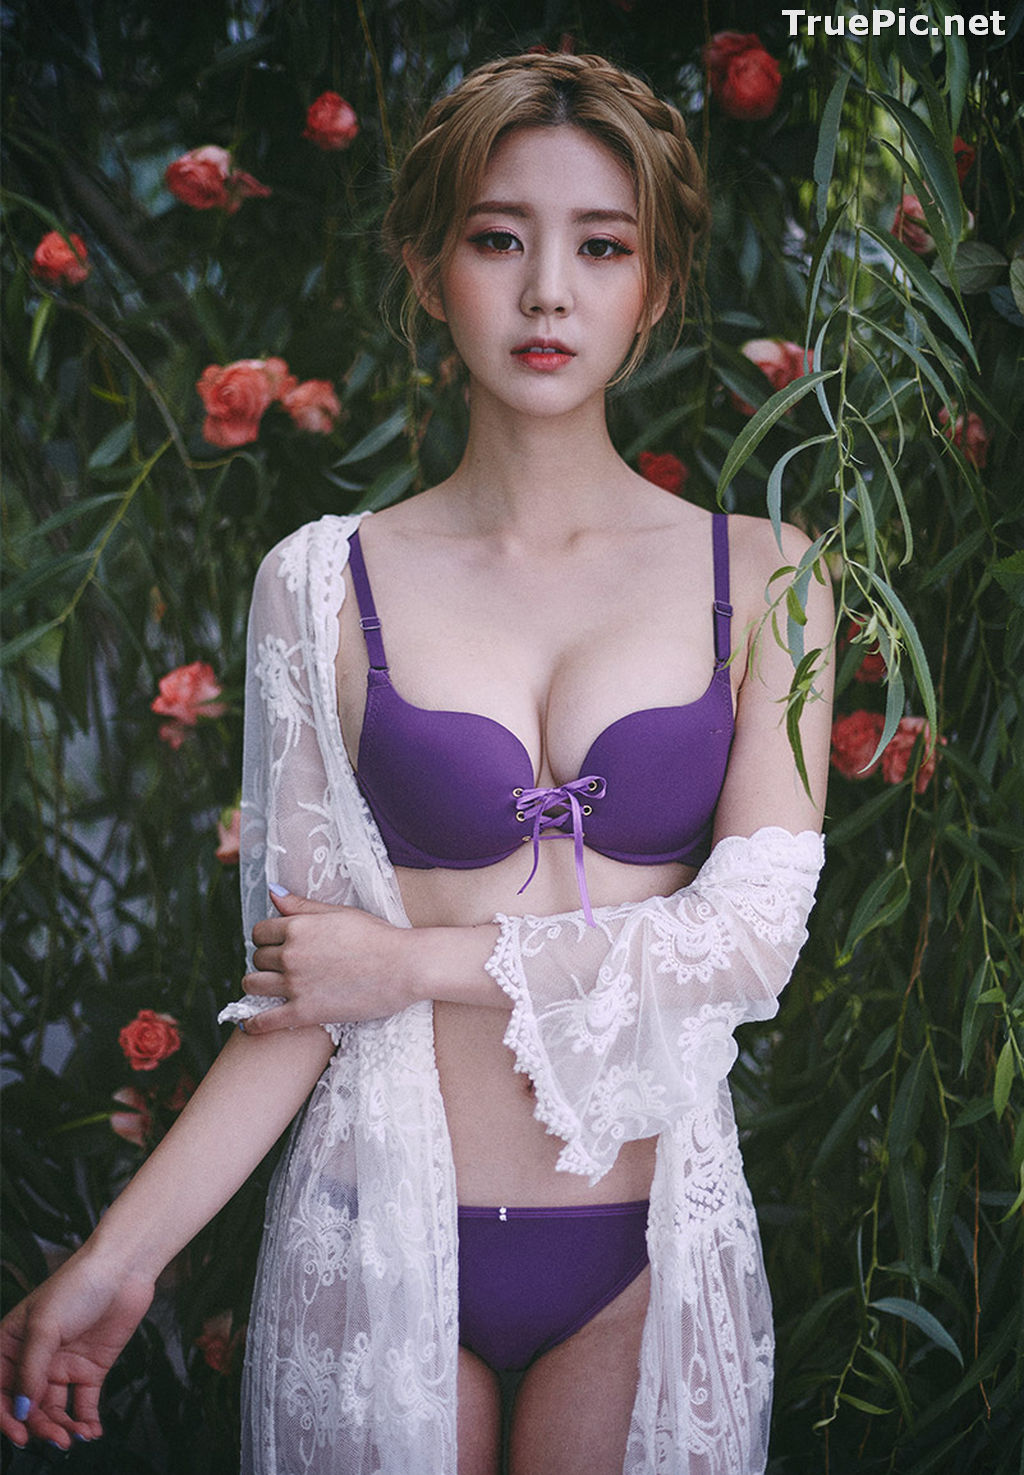 Image Lee Chae Eun - Korean Fashion Model - Purple Lingerie Set - TruePic.net - Picture-7